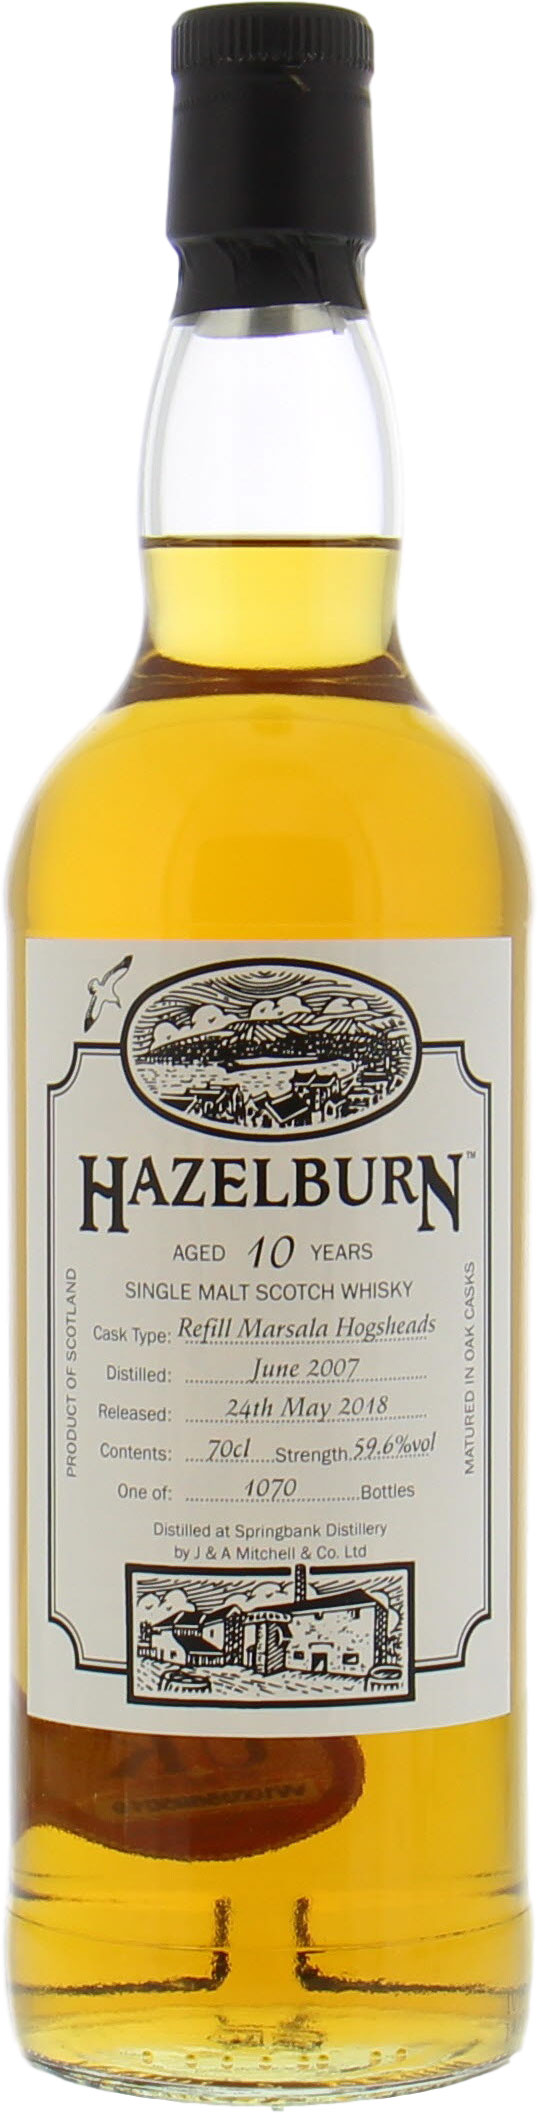 Hazelburn - 10 Years Old Open Day 2018 59.6%